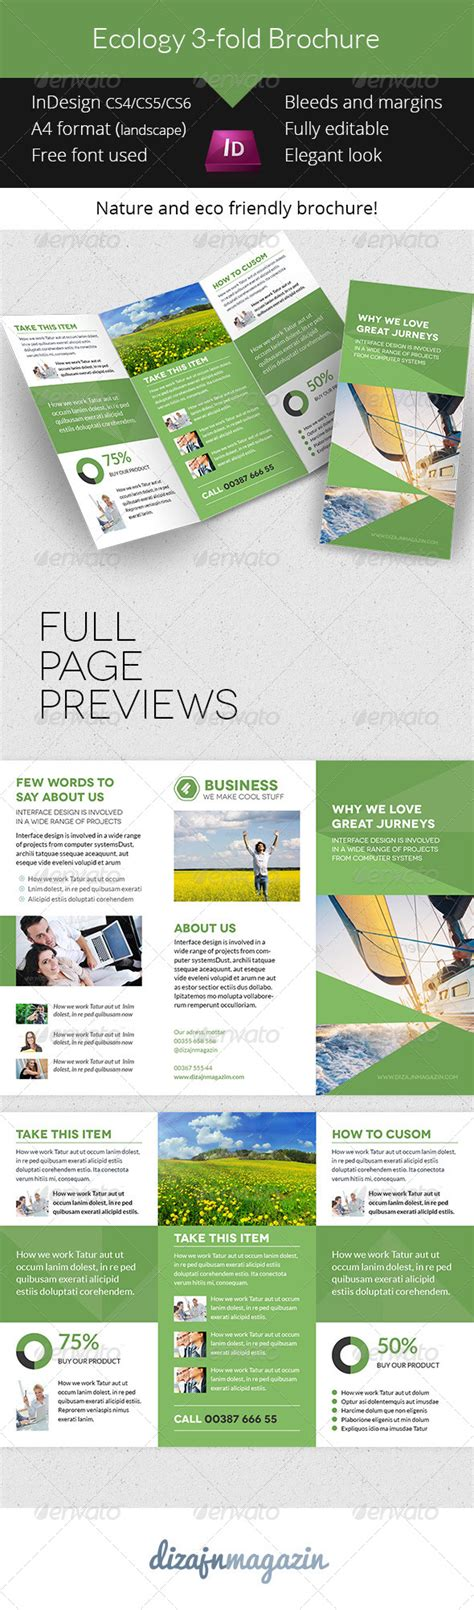 informational brochure templates ecology trifold brochure indesign template graphicriver